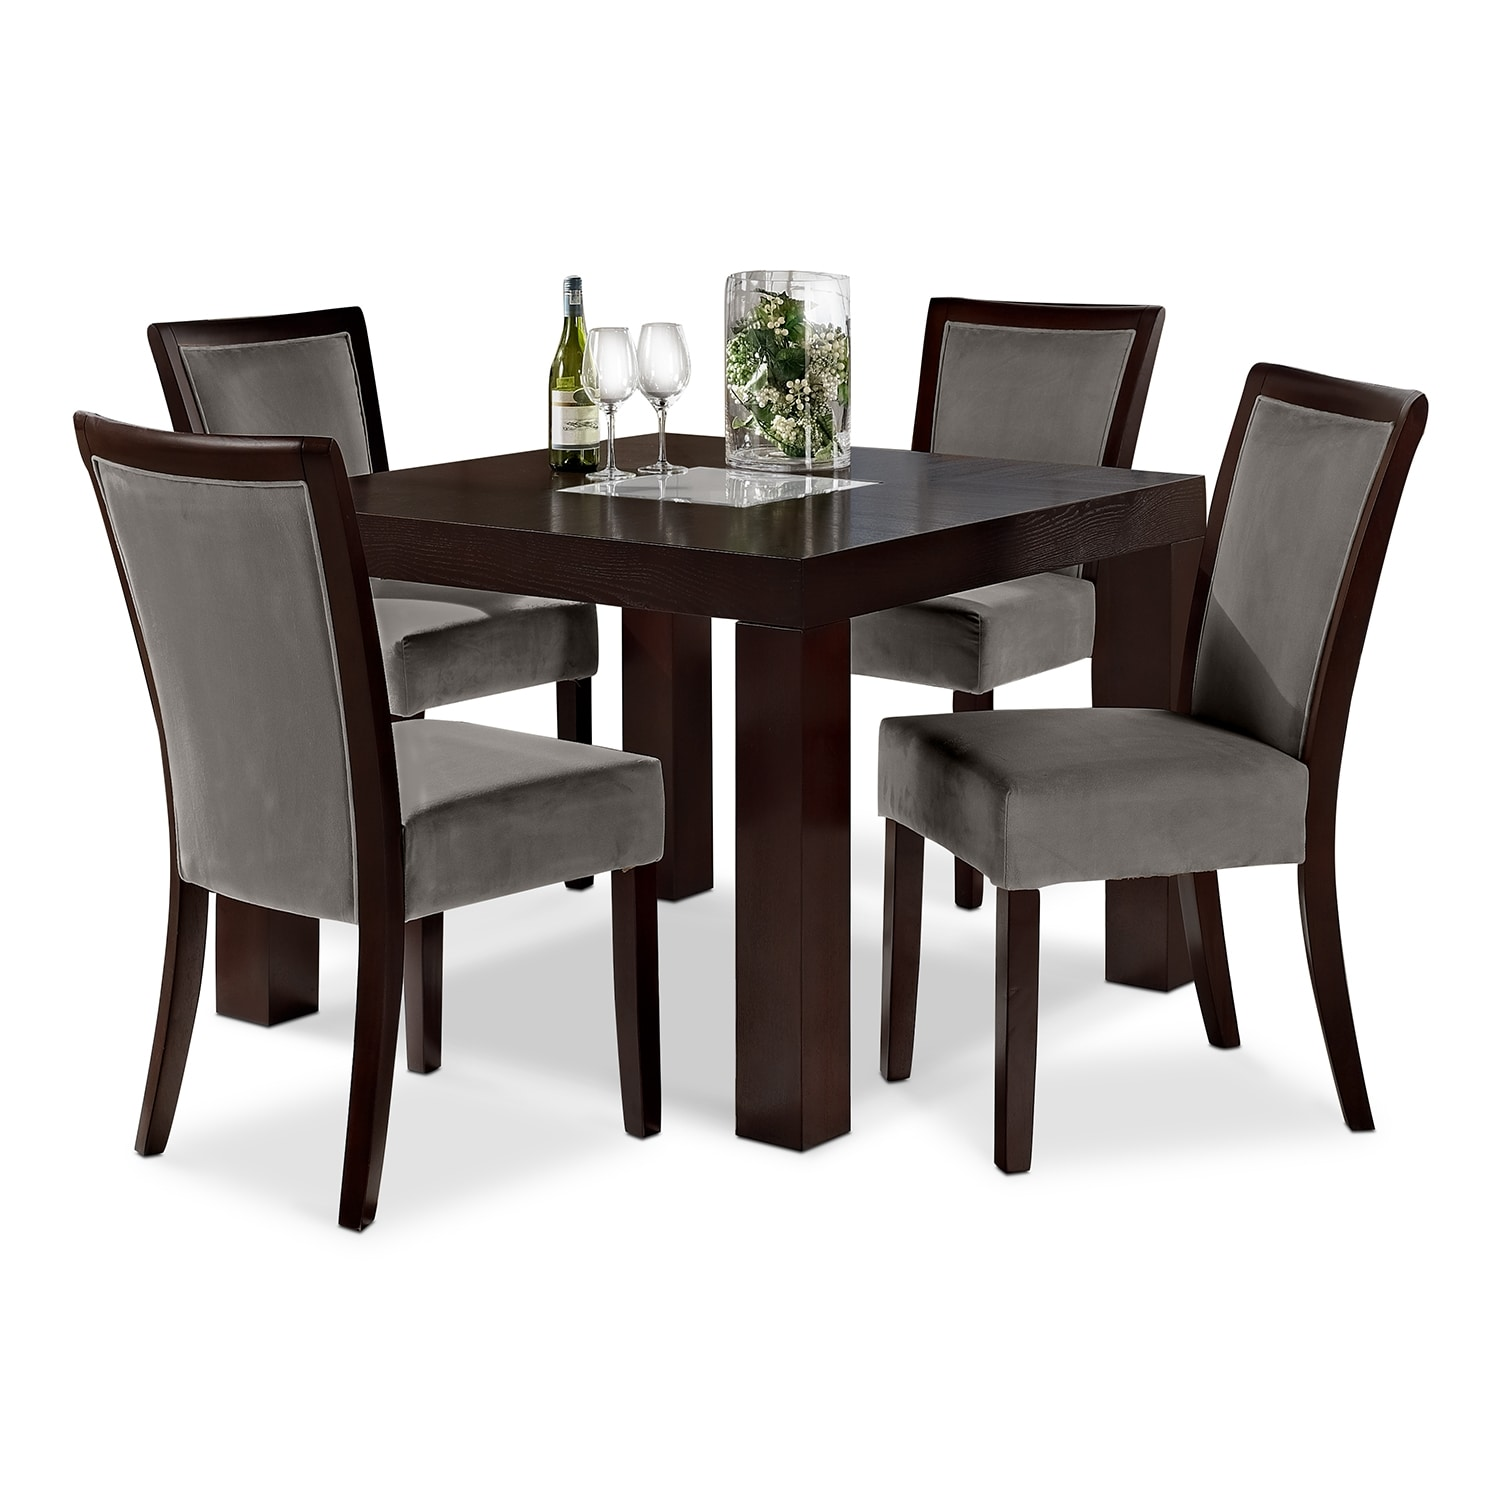 Tango gray dining room 5 pc dinette 42 table value for Dinette furniture